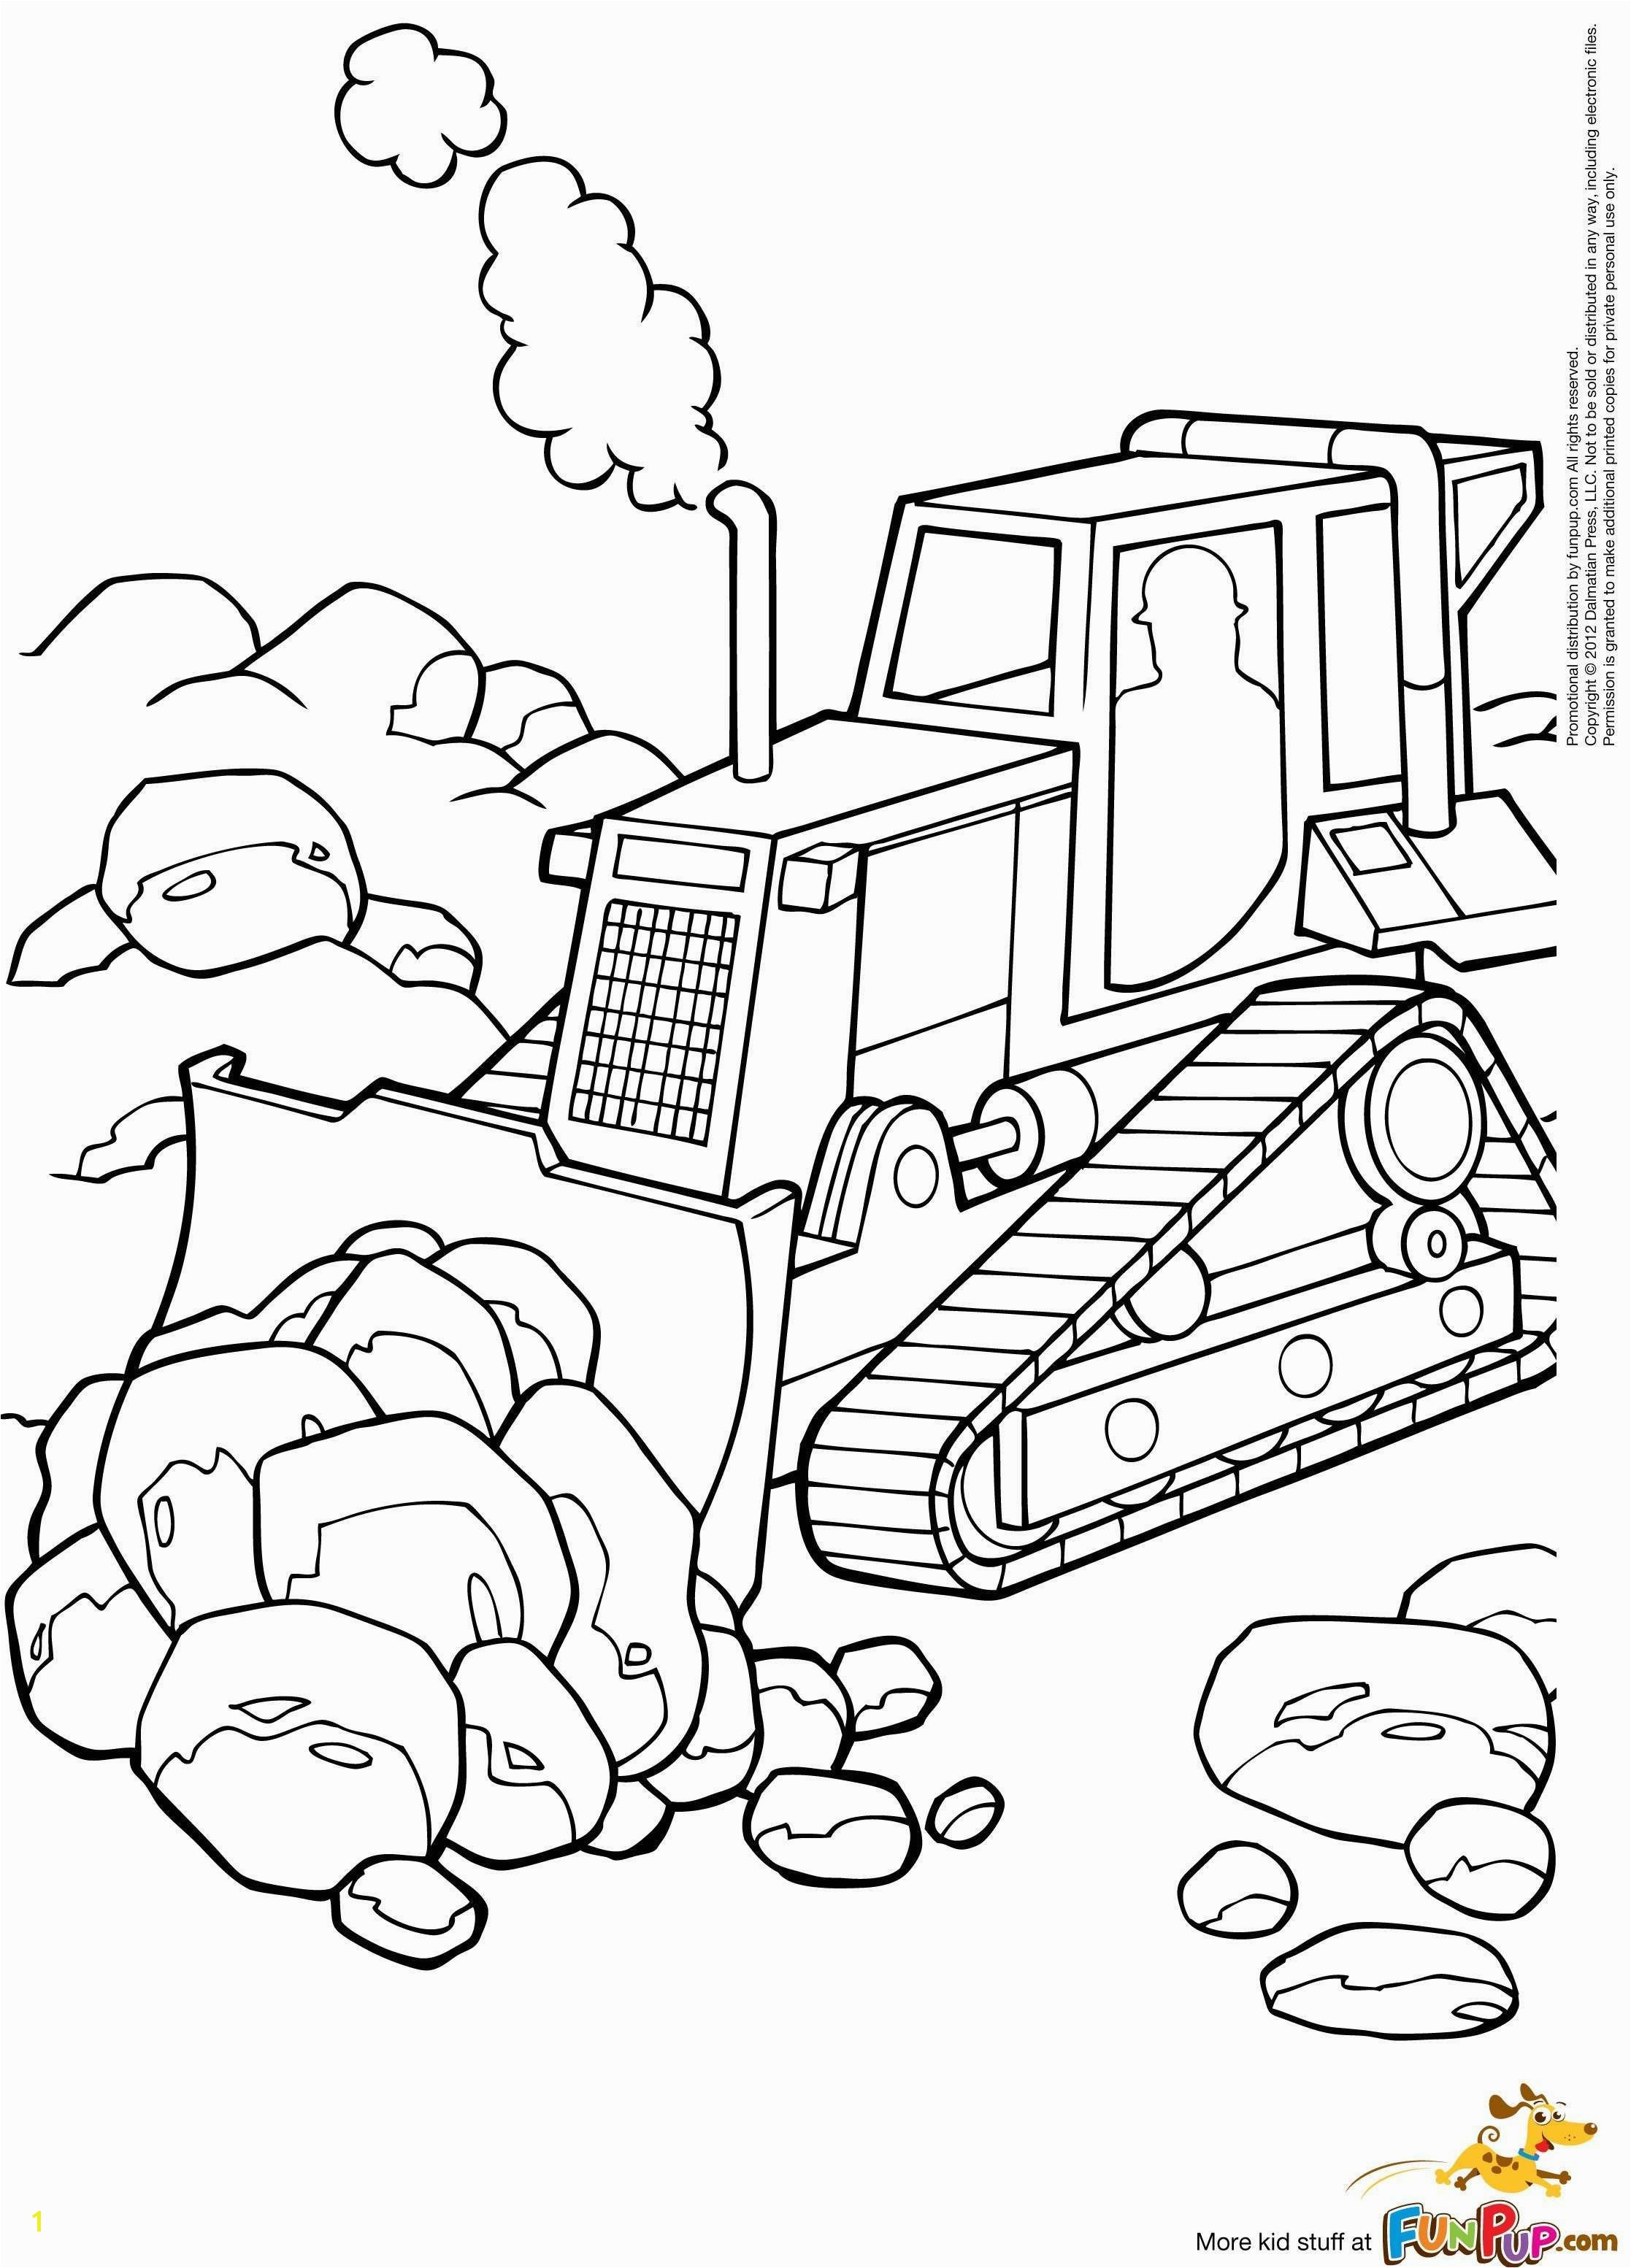 Lego Printable Coloring Pages 22 Coloring Pages for Boys Lego Printable